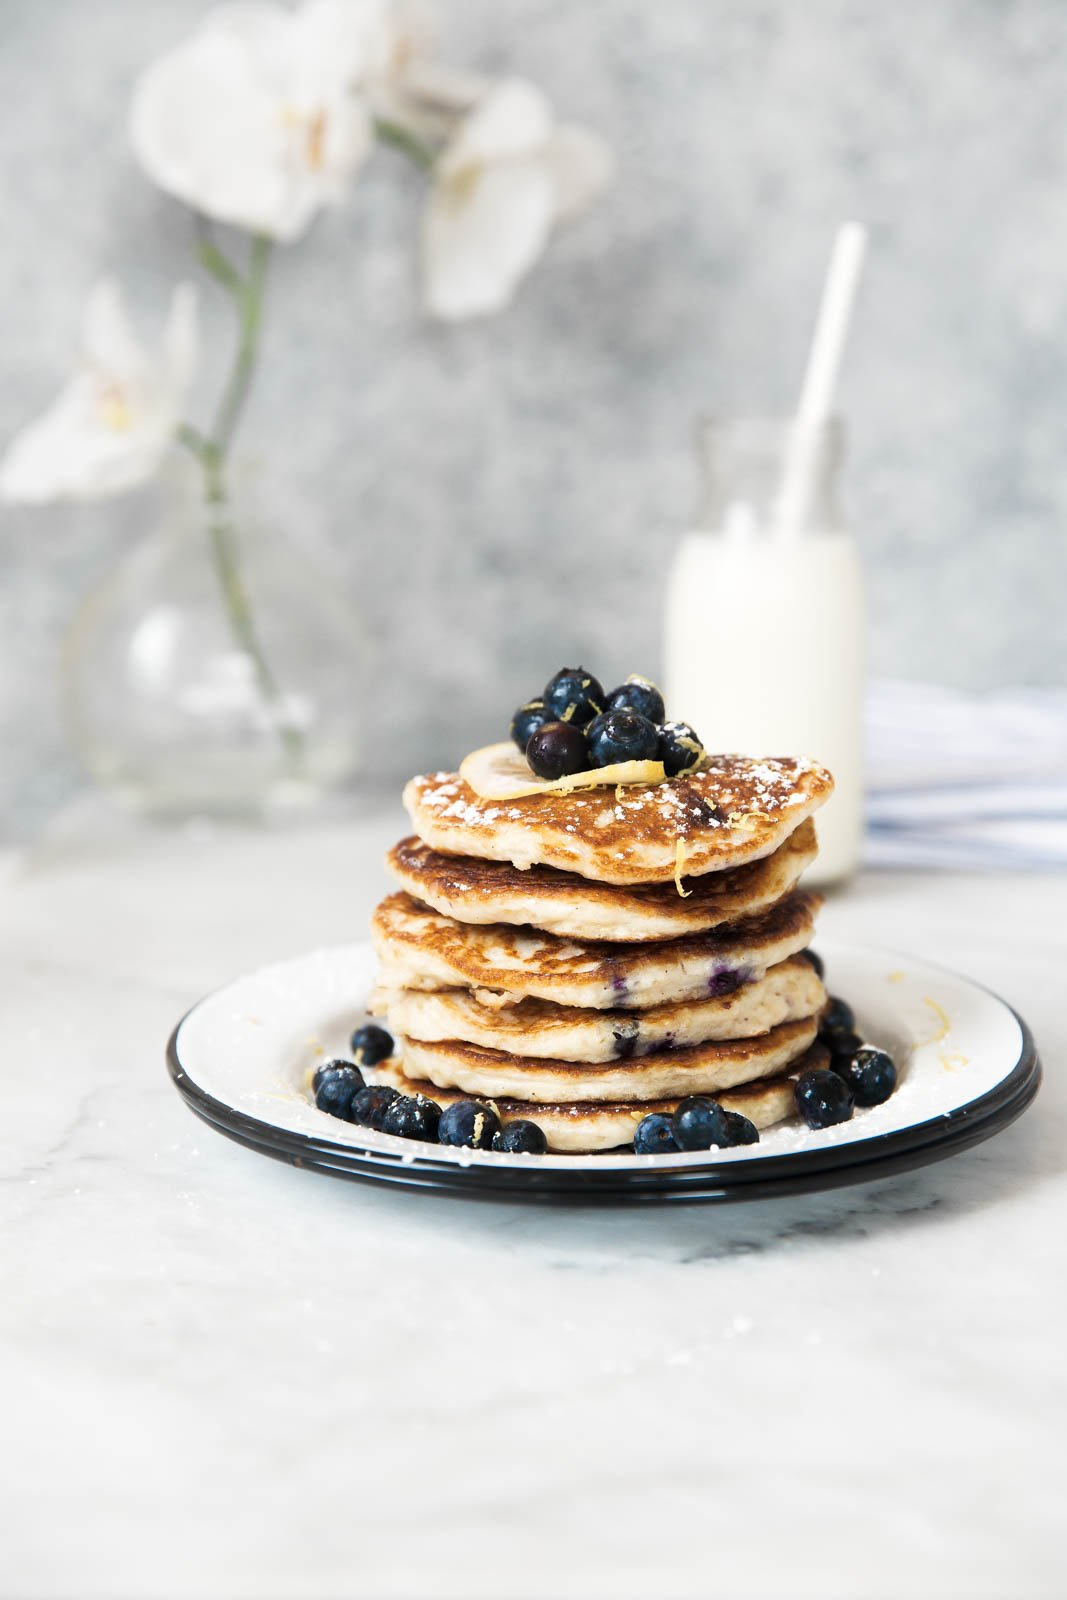 Healthy and hearty quinoa pancakes with lemon and blueberry. Fluffy and delicious.